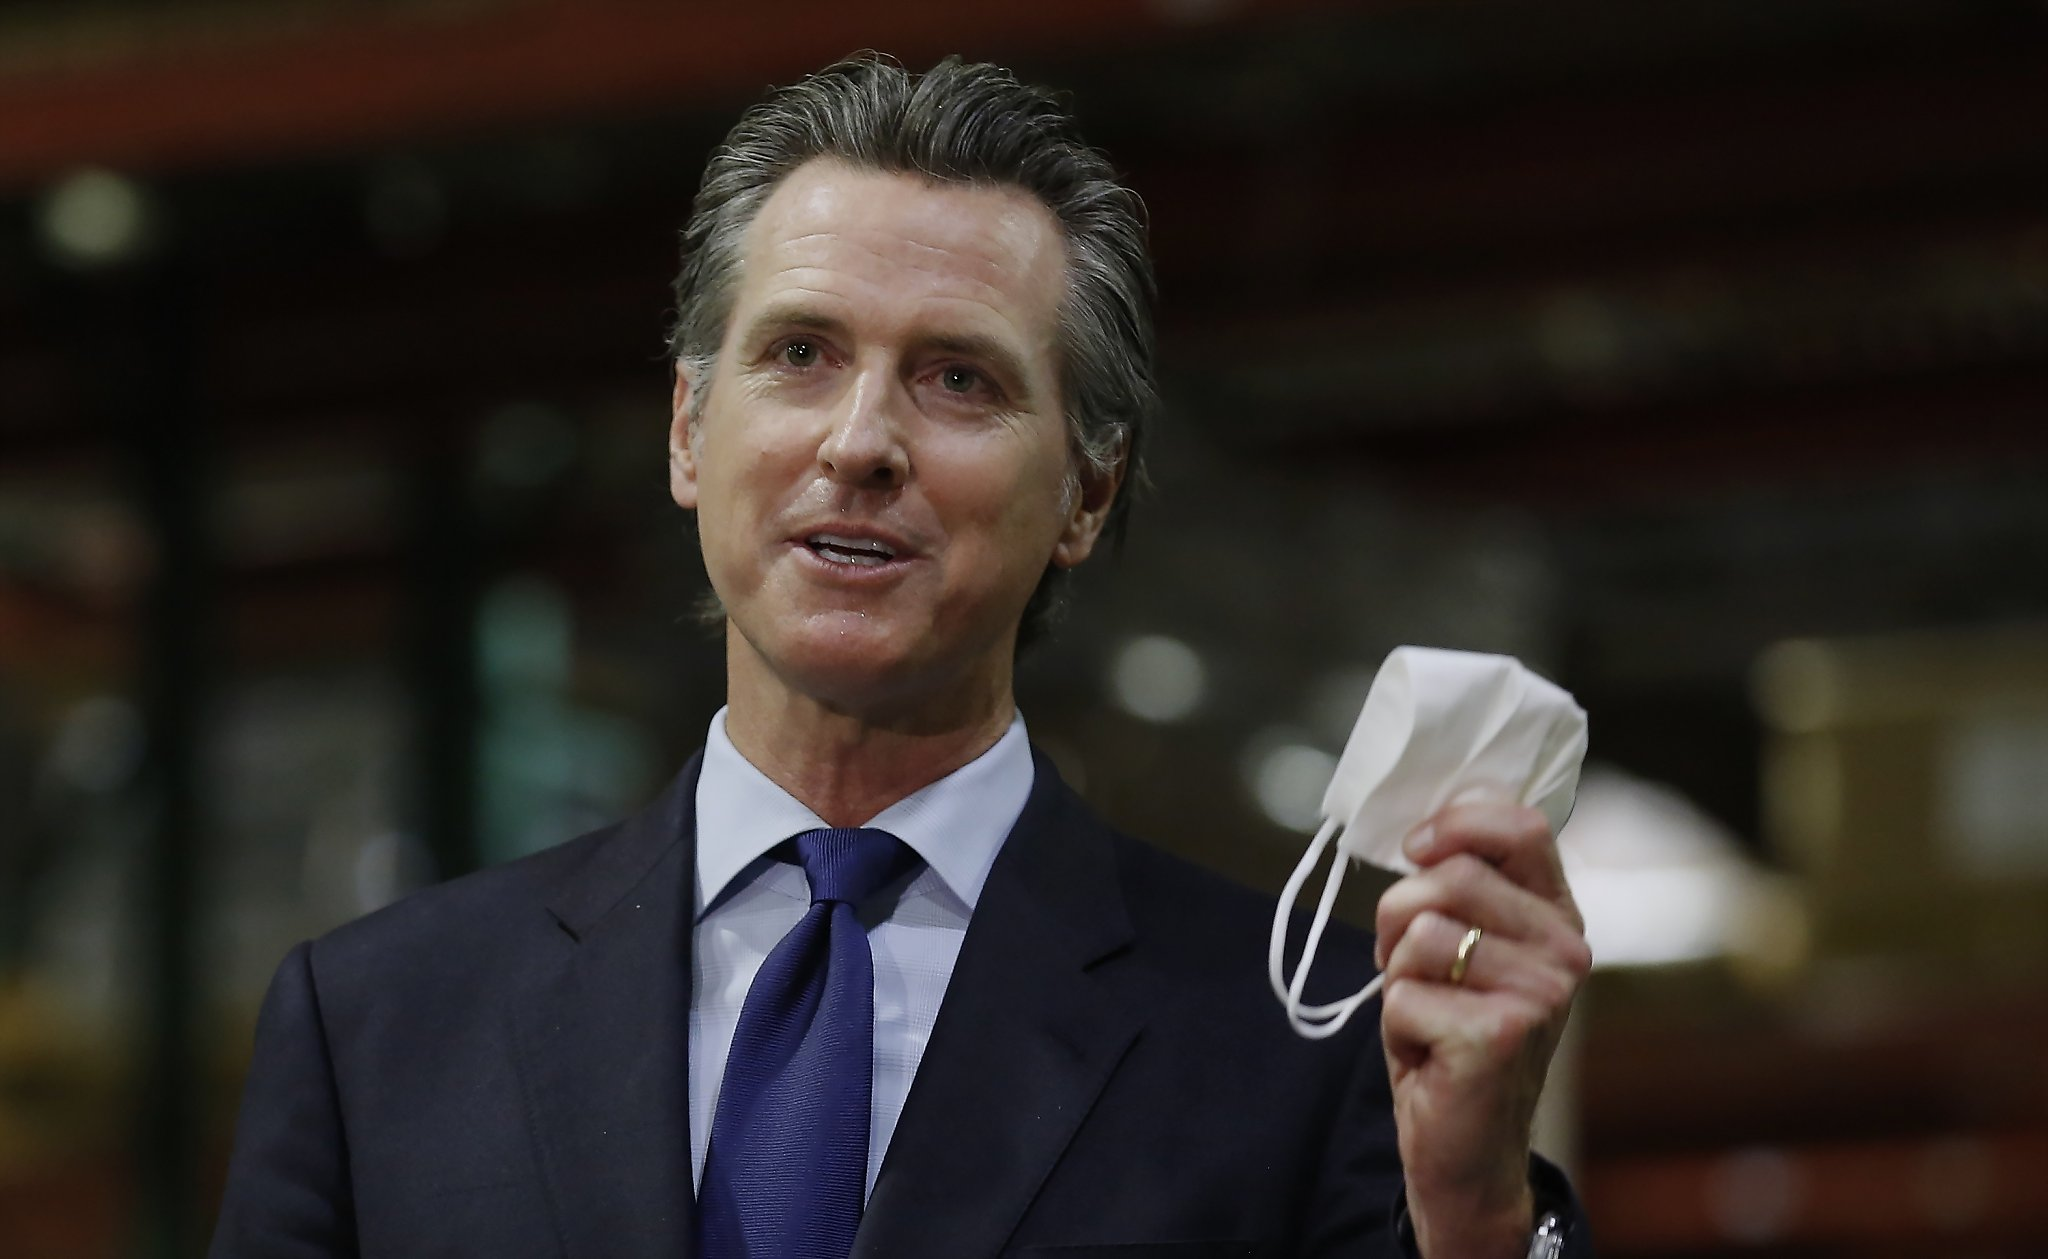 California can't pay for Trump's jobless benefits, Newsom says. 'No money sitting in the piggy bank'